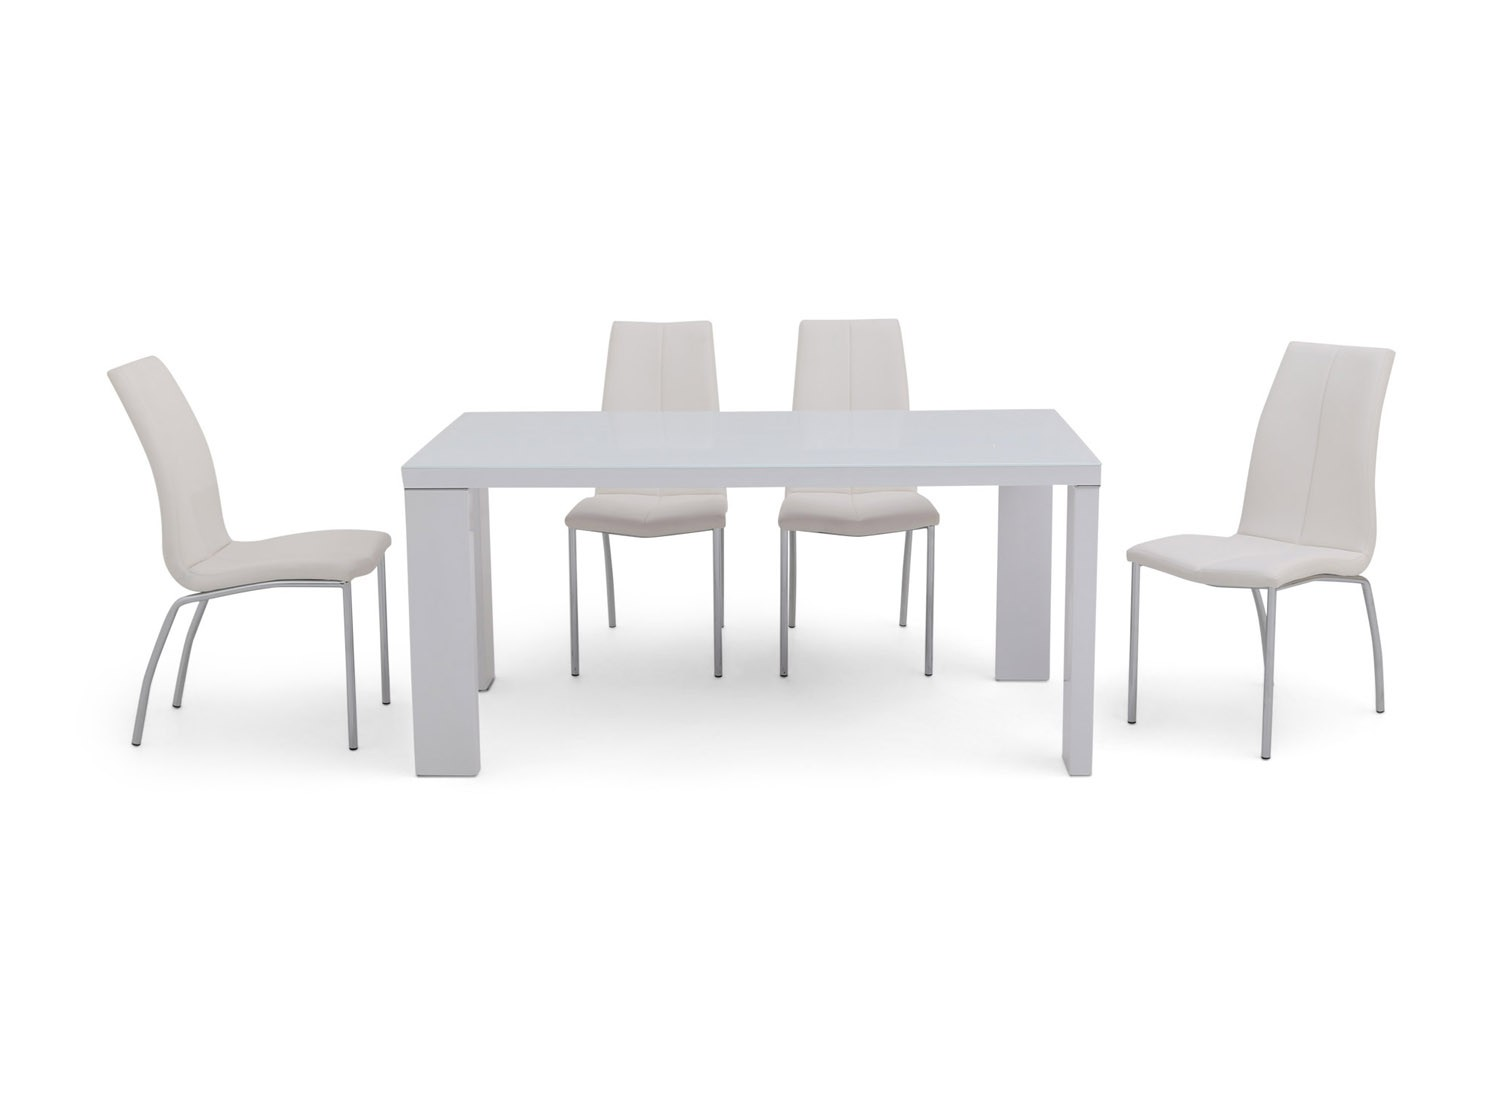 https://www.firstfurniture.co.uk/pub/media/catalog/product/f/a/fairmont_lucca_white_high_gloss_dining_table_6_ava_black_chairs_1.jpg